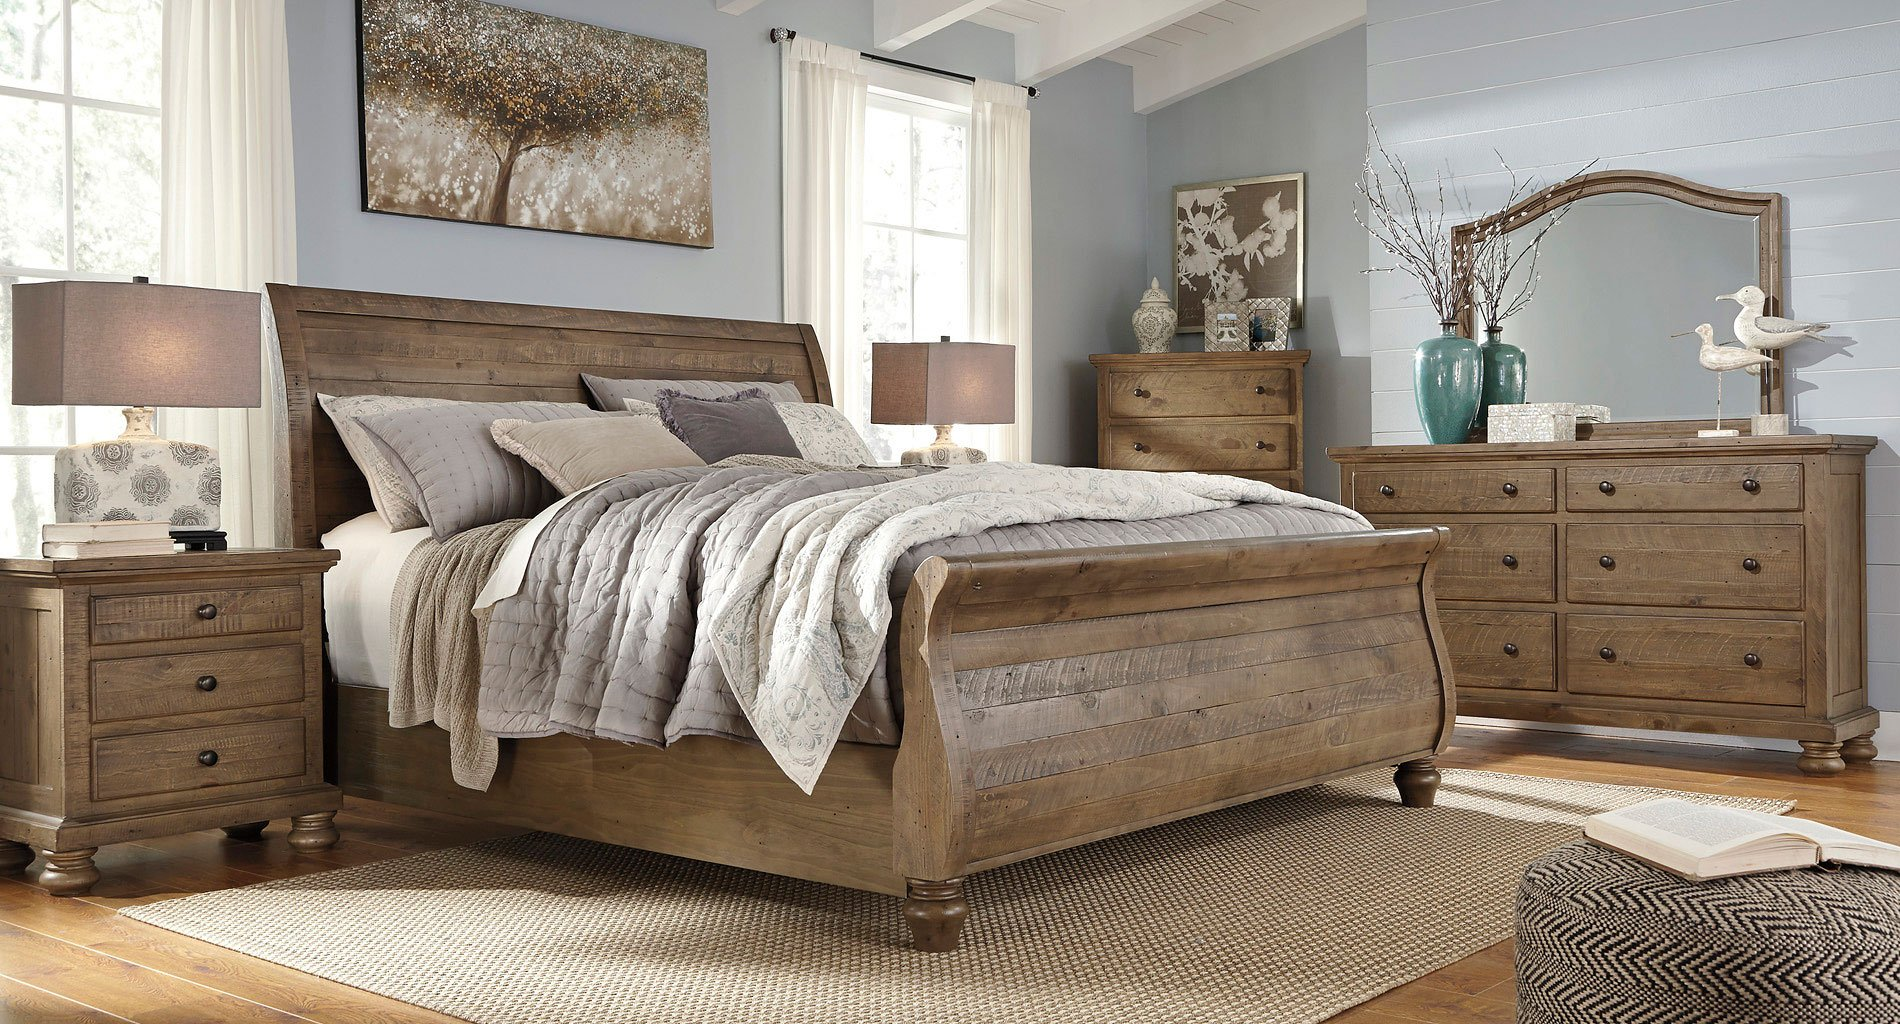 Modern Sleigh Bedroom Sets Design